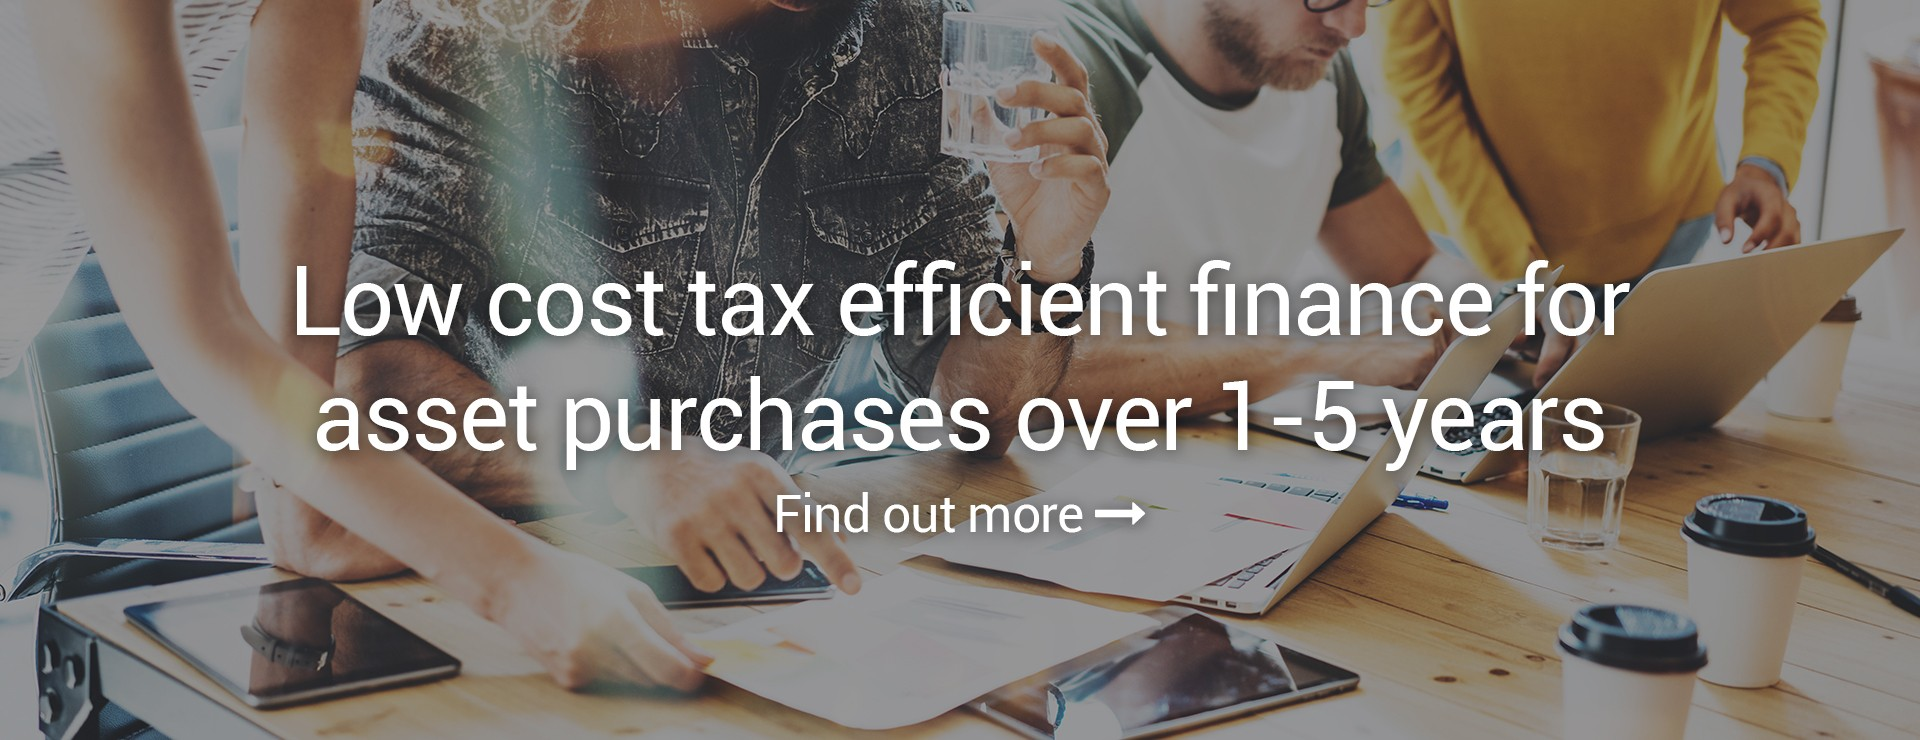 Low cost tax efficient finance for asset purchases over 1-5 years